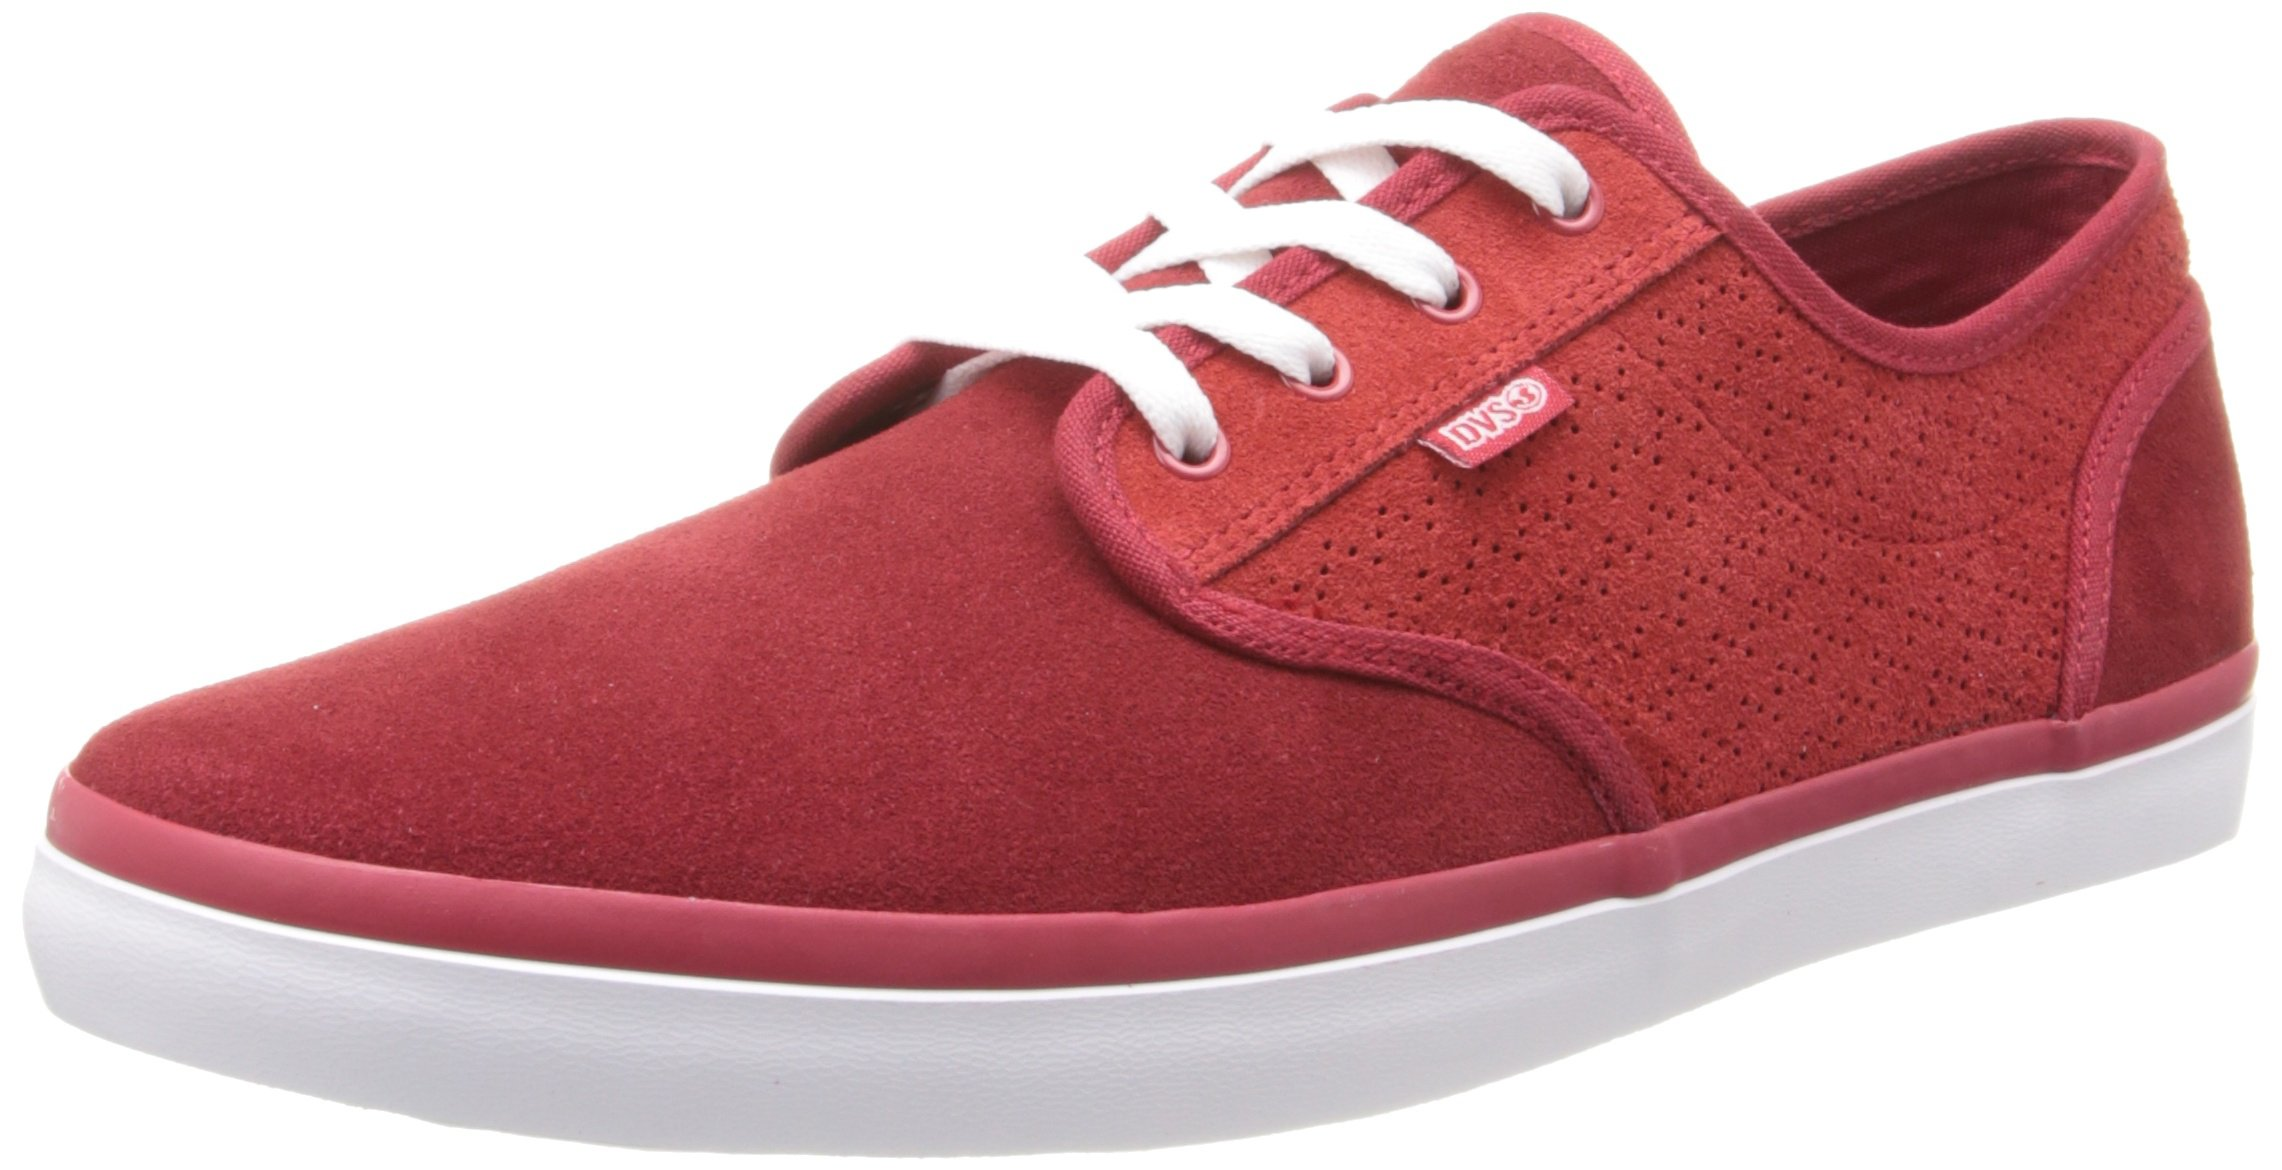 DVS Rico CT Skate Shoe,Red Suede,8 M US